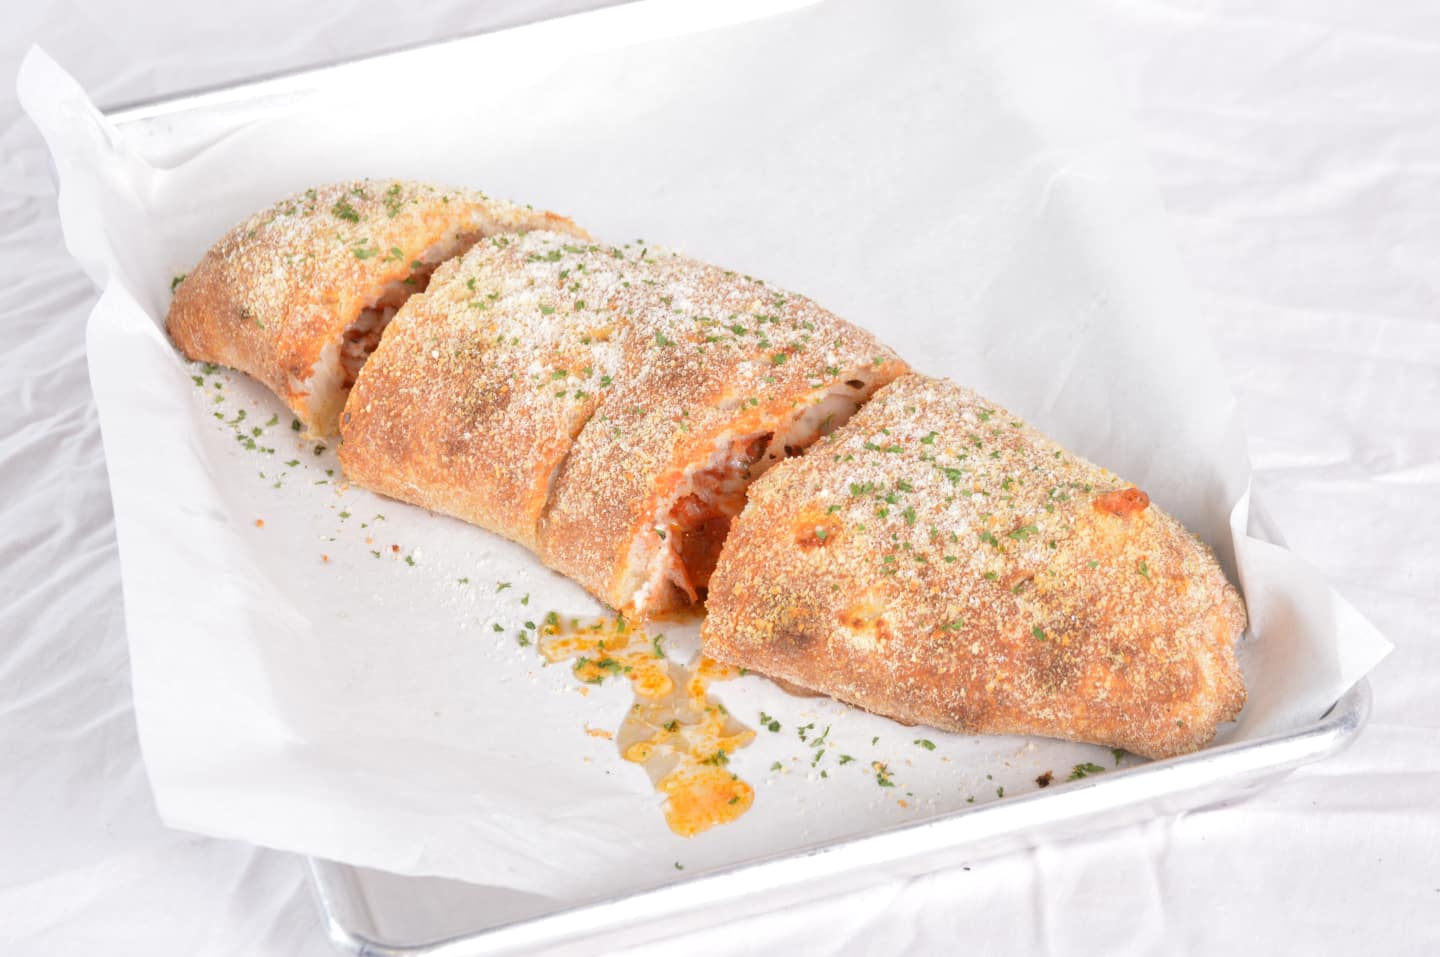 NEW YORK CALZONE